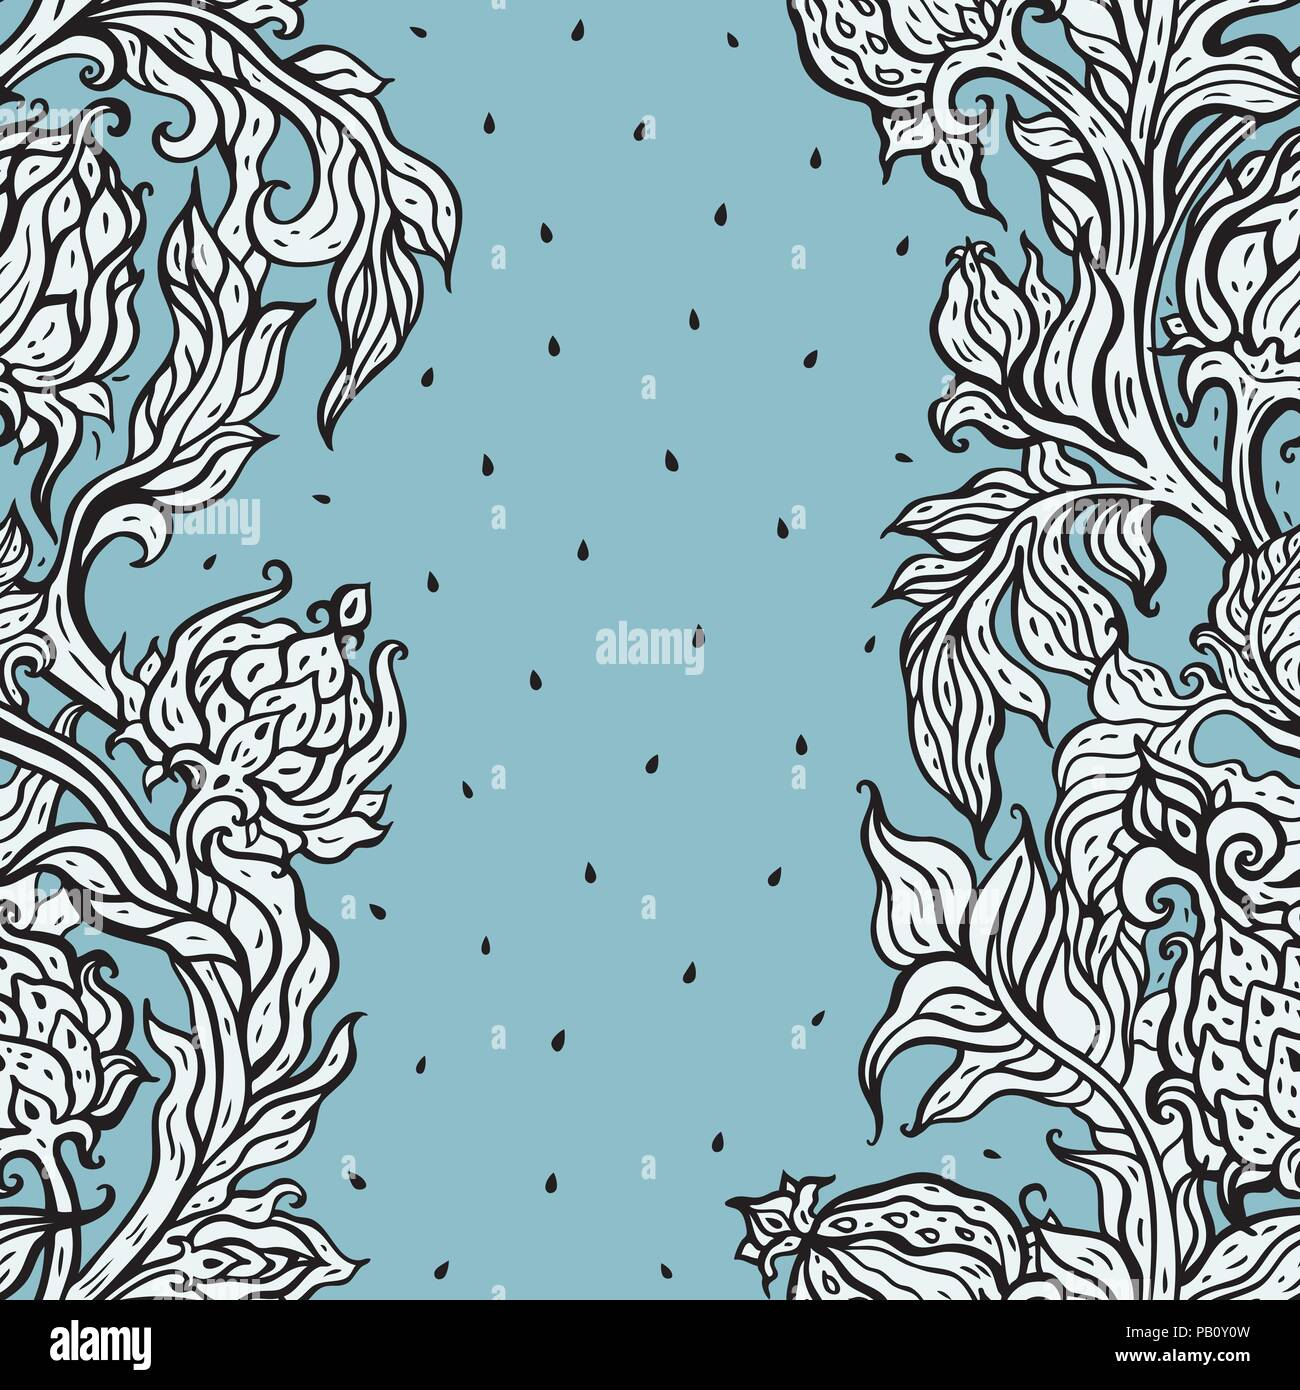 Vintage Floral Seamless Pattern With Hand Drawn Flowers Can Be